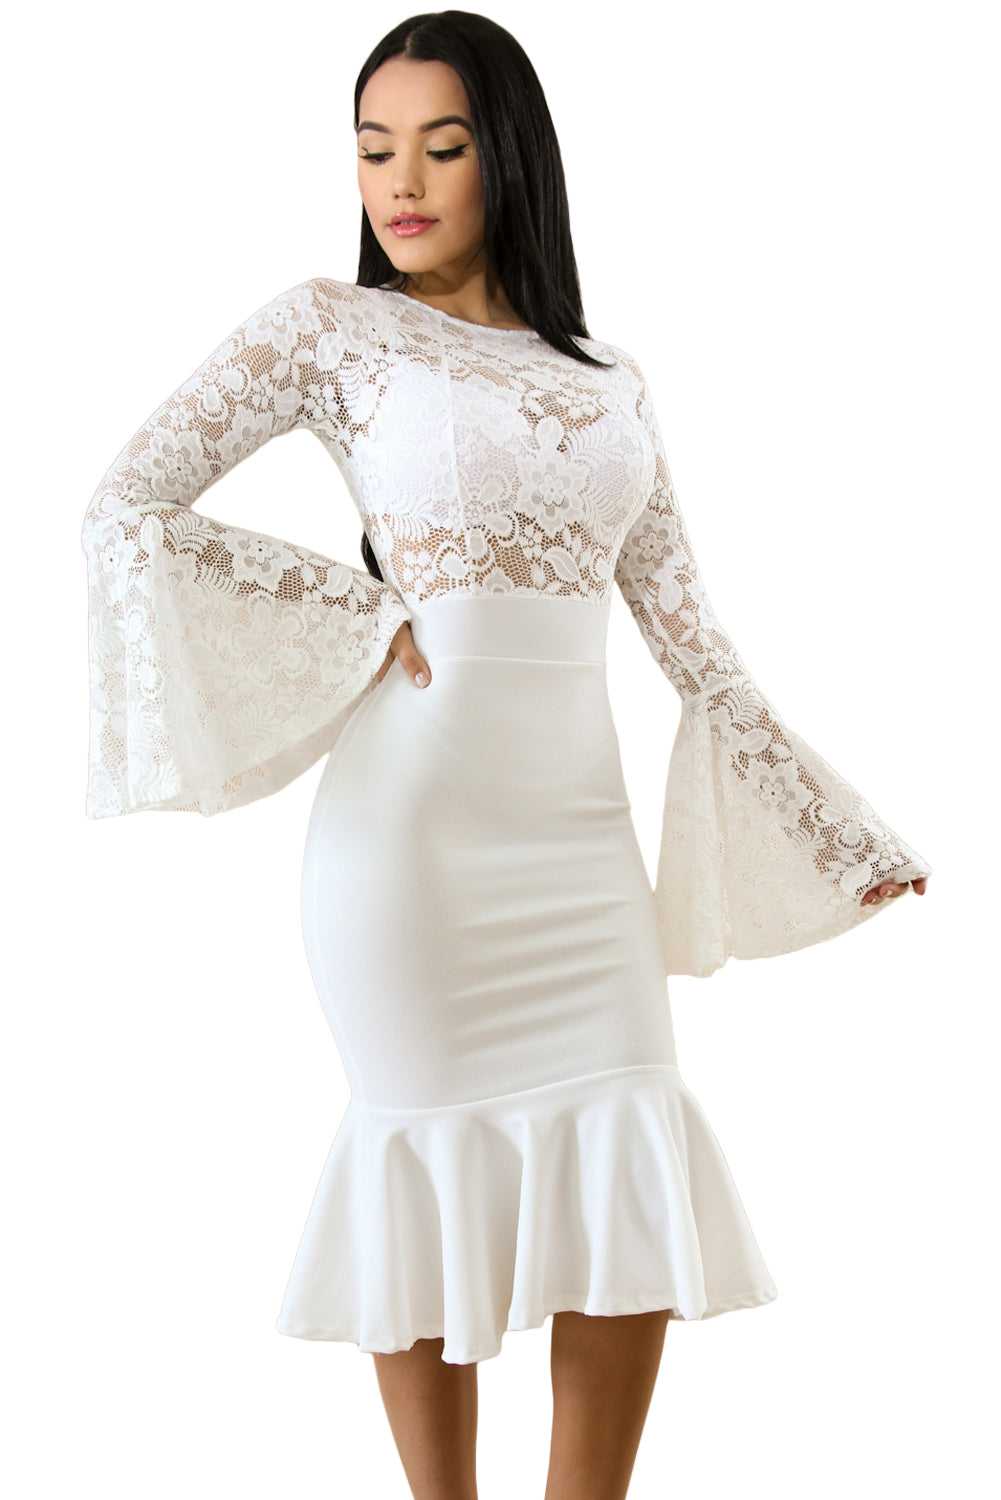 98f909b397c Sexy White Lace Bell Mermaid Bodycon Party Dress – SEXY AFFORDABLE CLOTHING